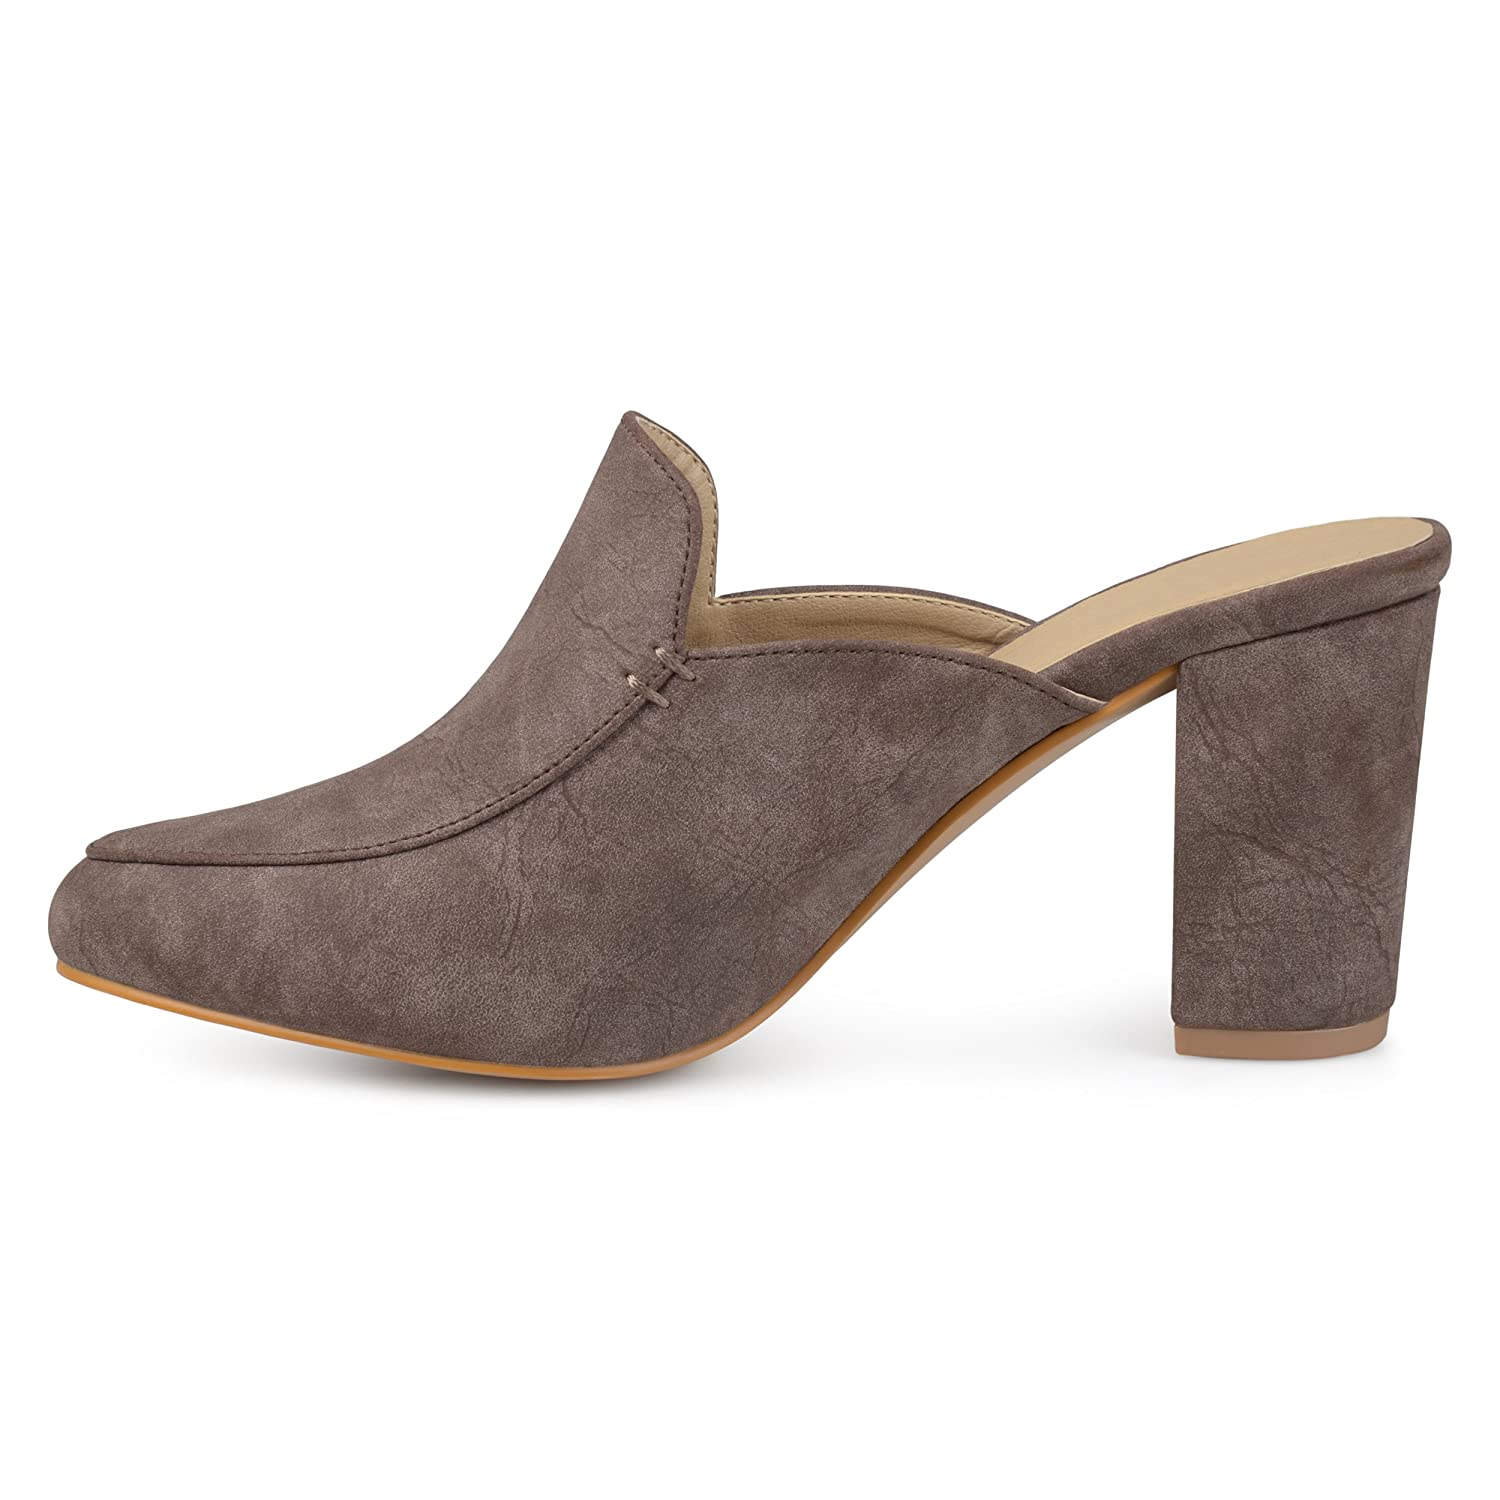 f2186c4d0c1 Brinley Co Womens Thirza Block Heel Distressed Loafer Mules marrón